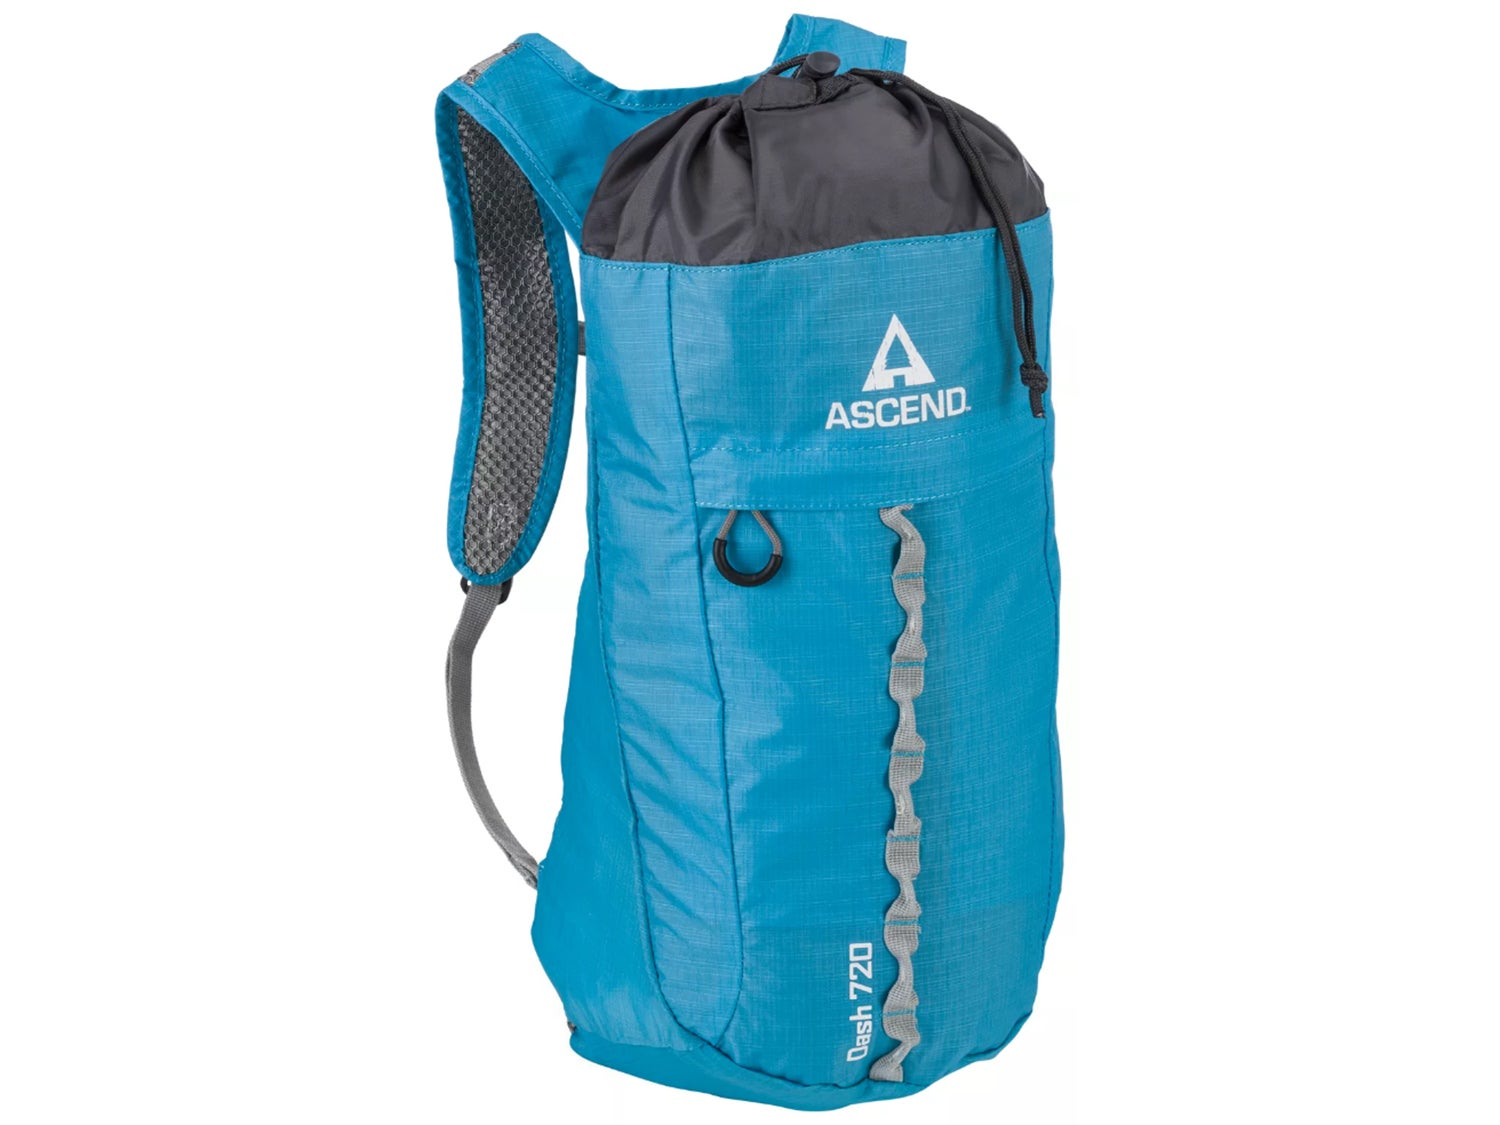 Ascend Lightweight Backpack